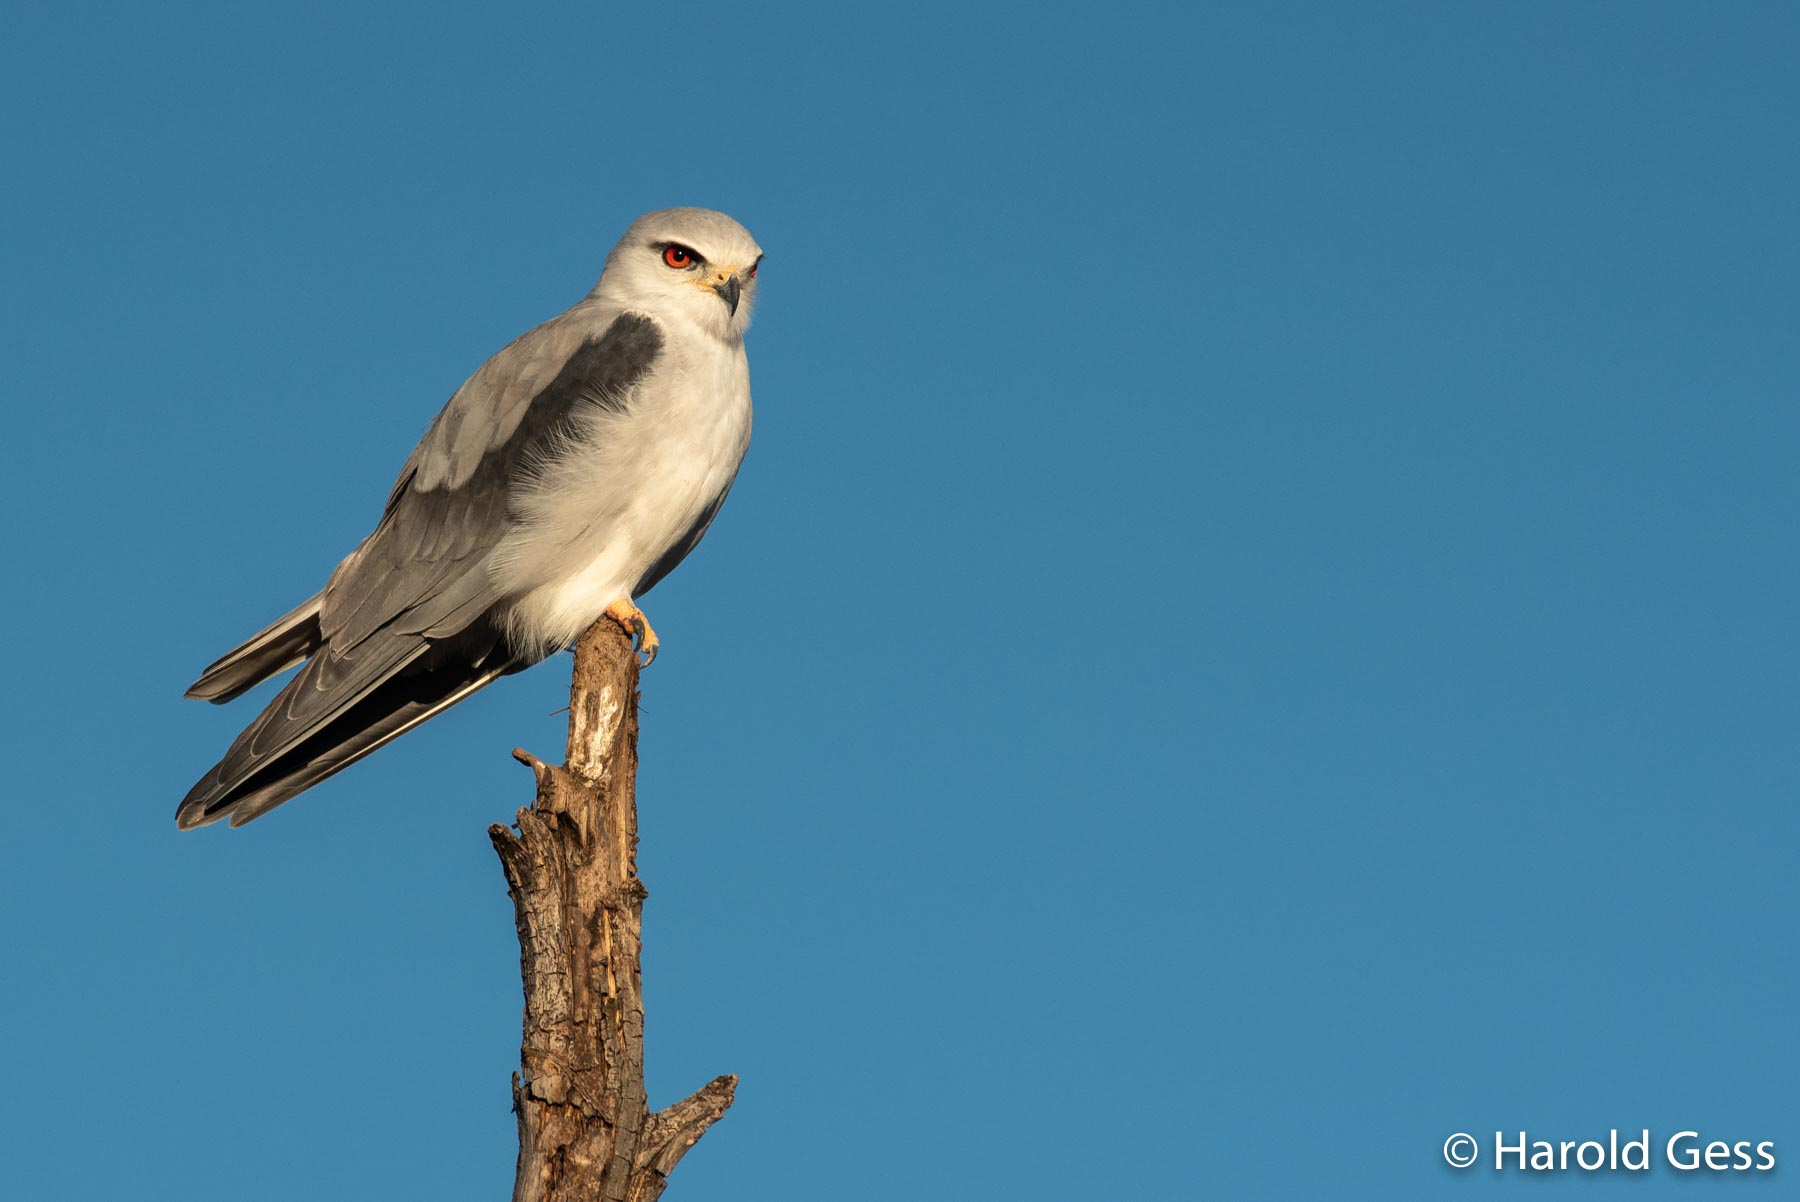 Black-shouldered Kite, Elanus caeruleus, near Grahamstown Eastern Cape, August 2019.